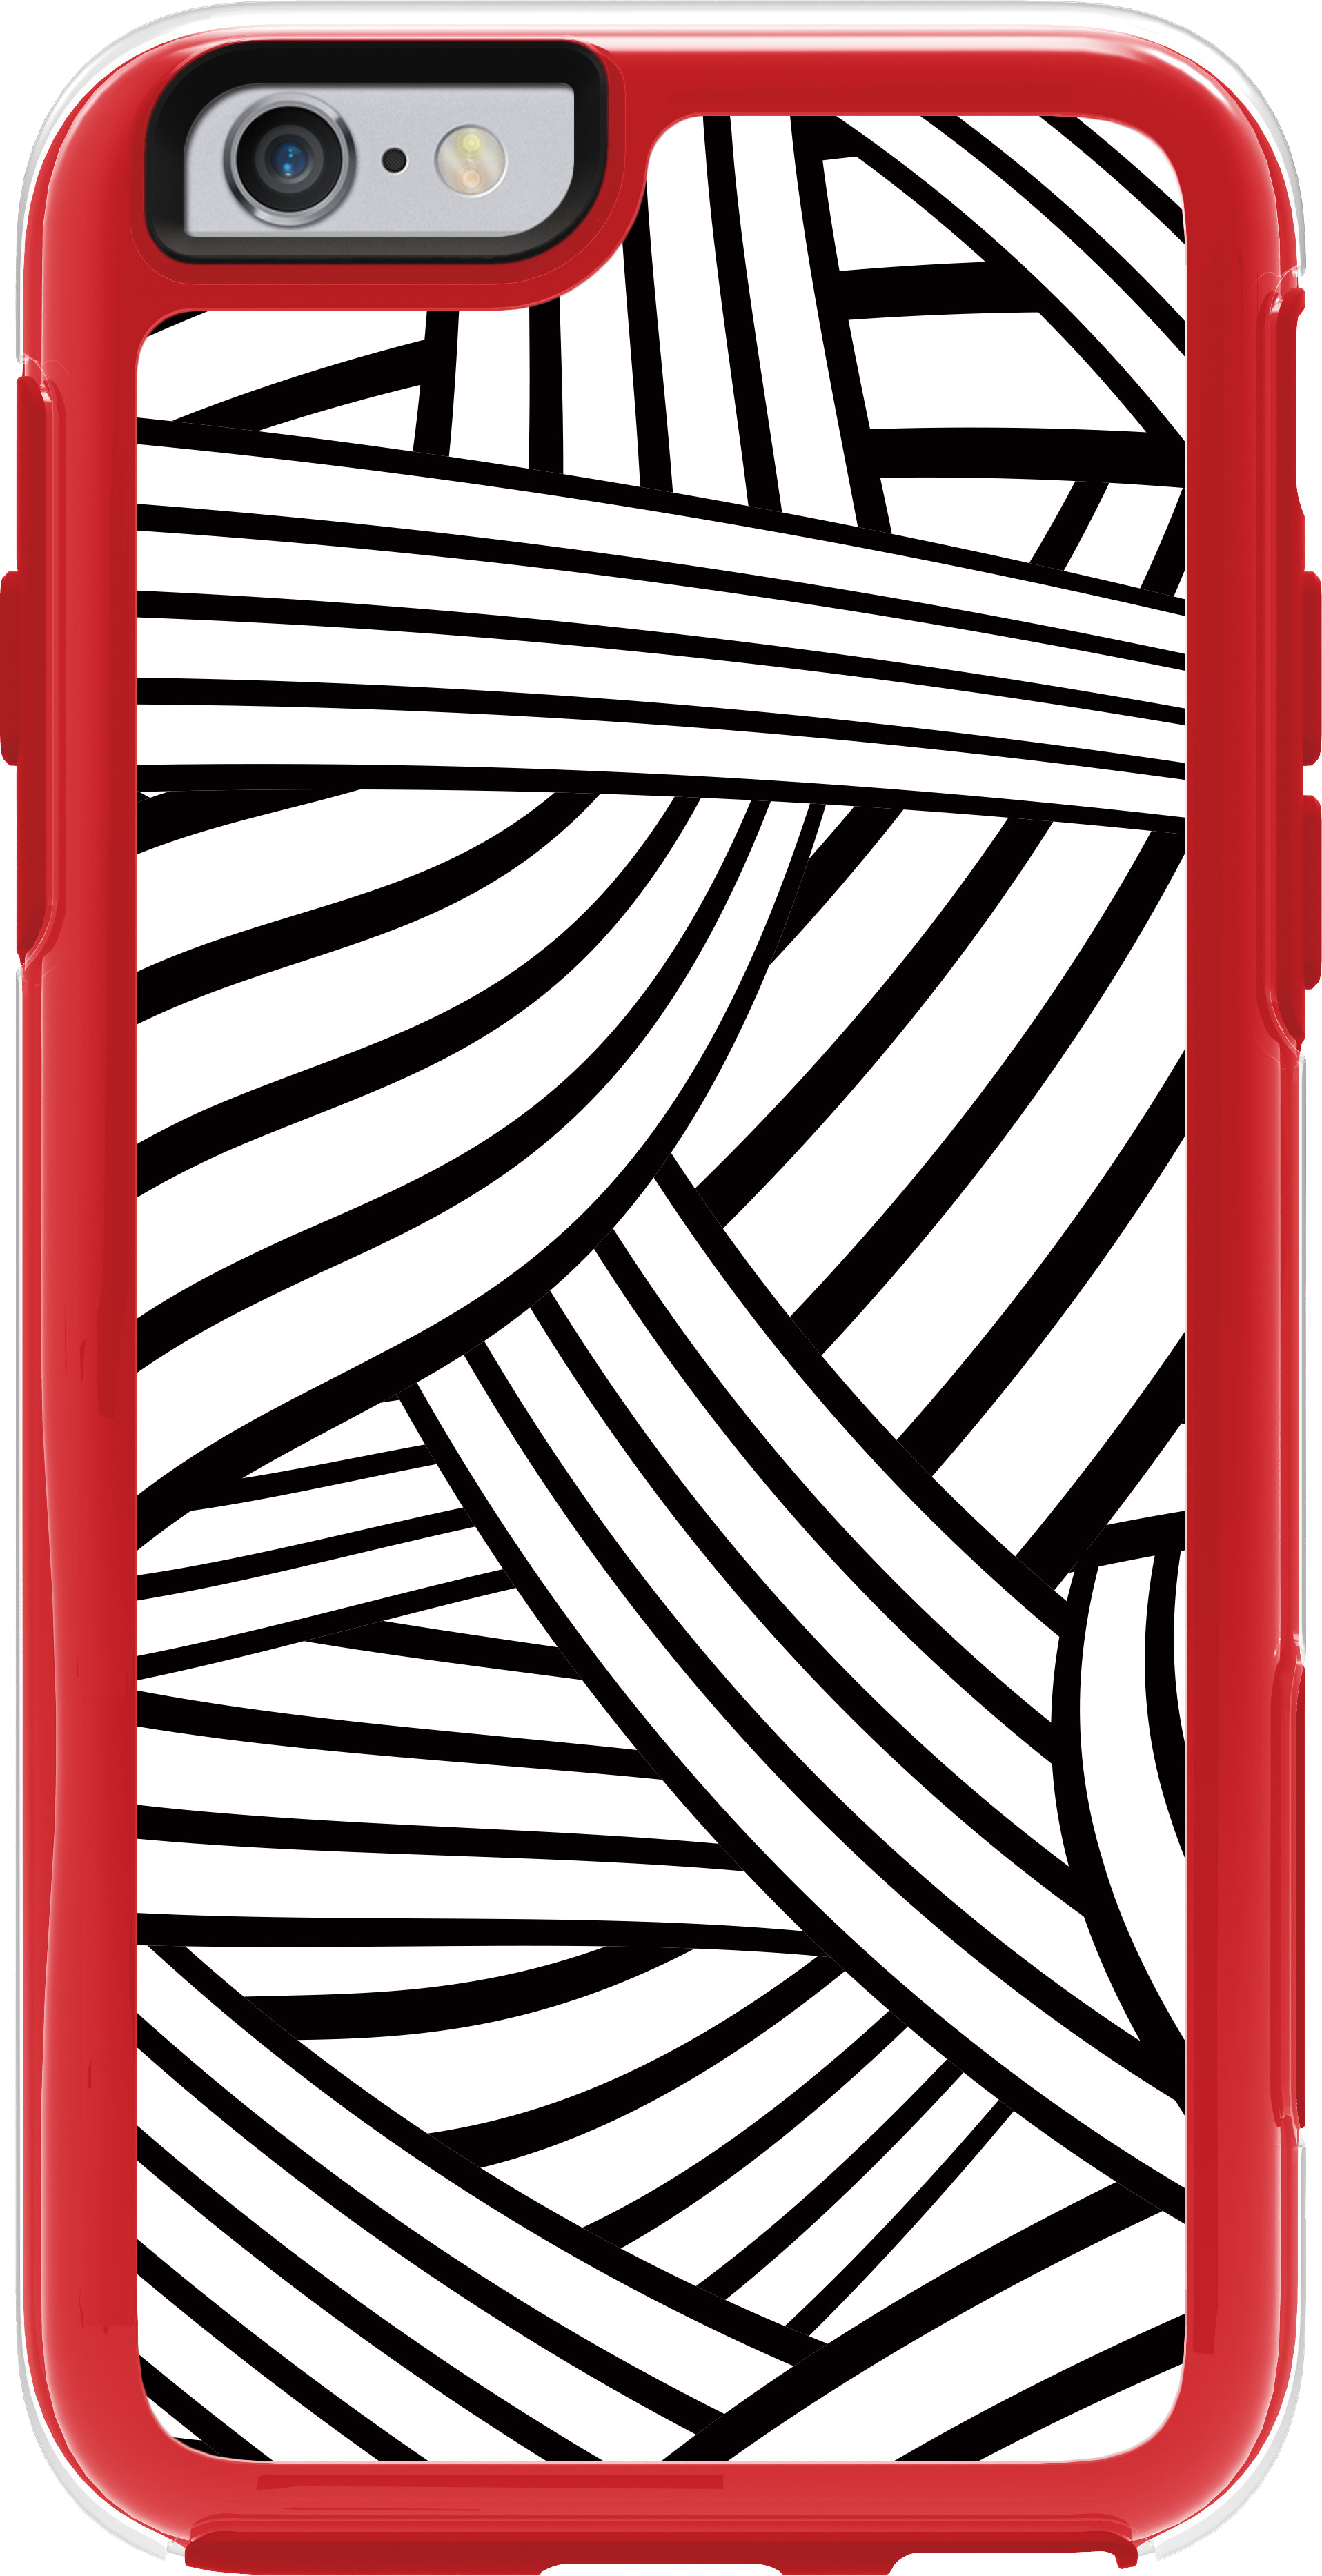 OtterBox iPhone 6s case - custom and swappable designs